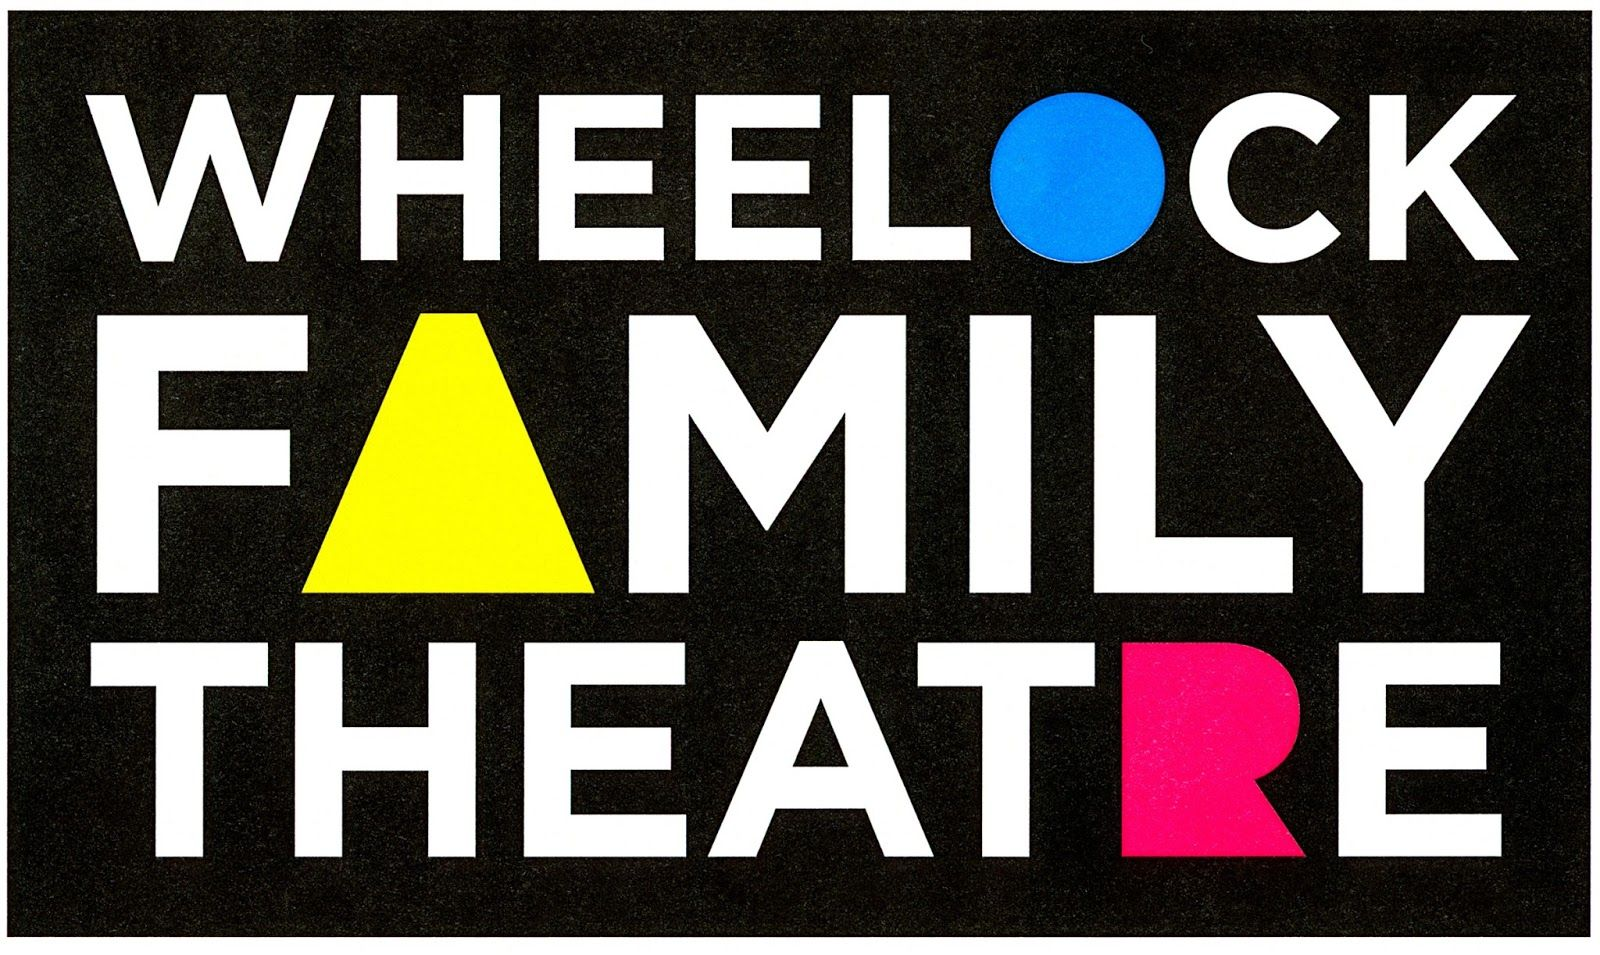 Not yet a member of the Puppet Showplace Theatre? Join--or renew your membership--by April 21, and you'll be entered in a drawing to win 4 FREE TICKETS to the Wheelock Family Theatre, 2013-2014 season